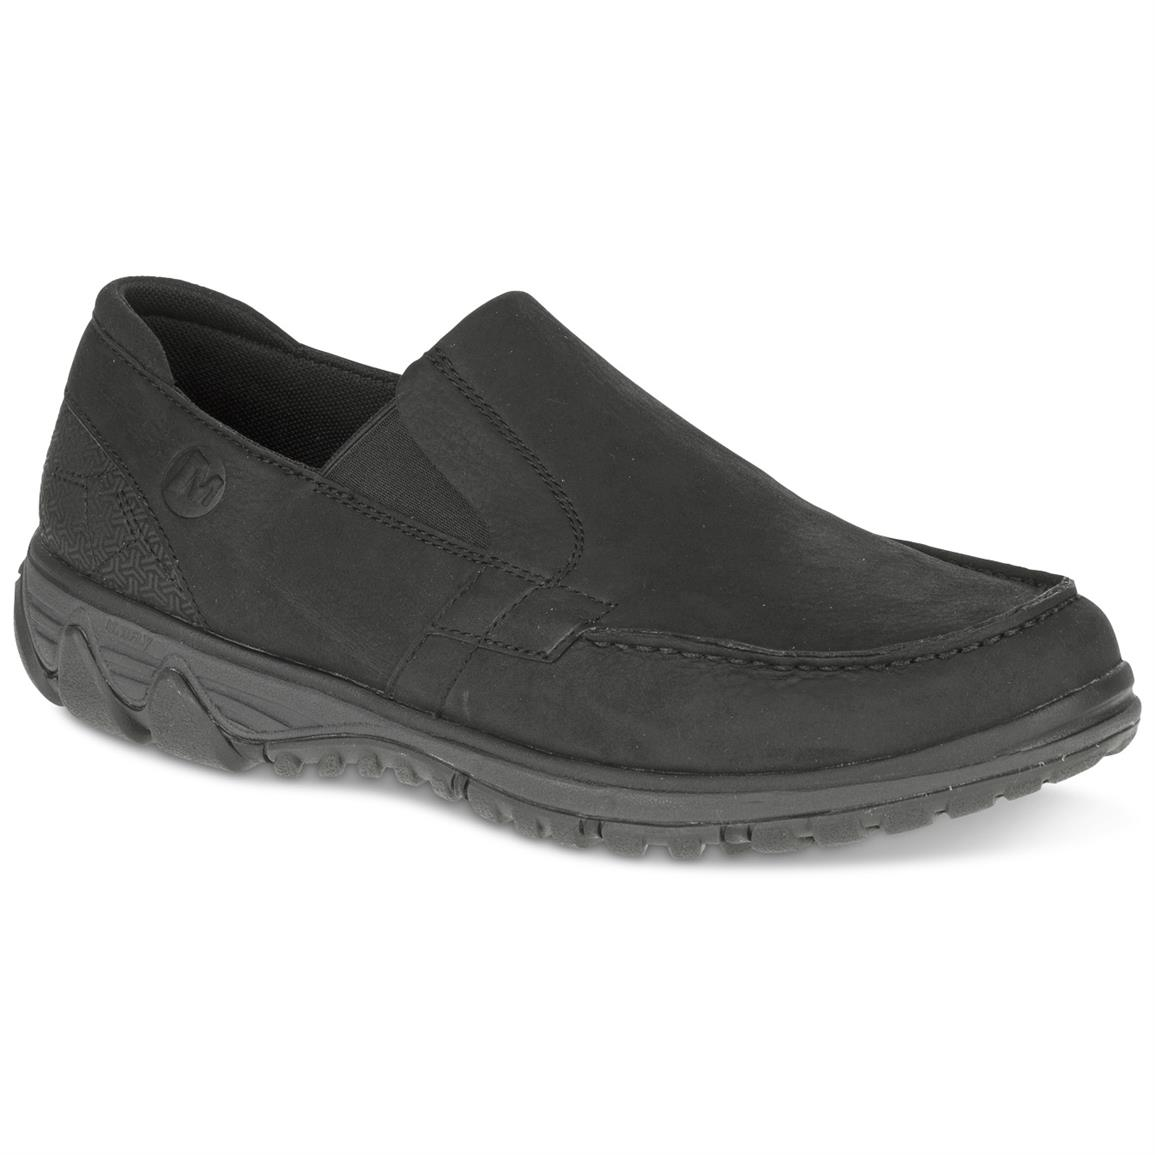 Merrell Men's All Out Blazer Moc Slip-on Shoes, Black